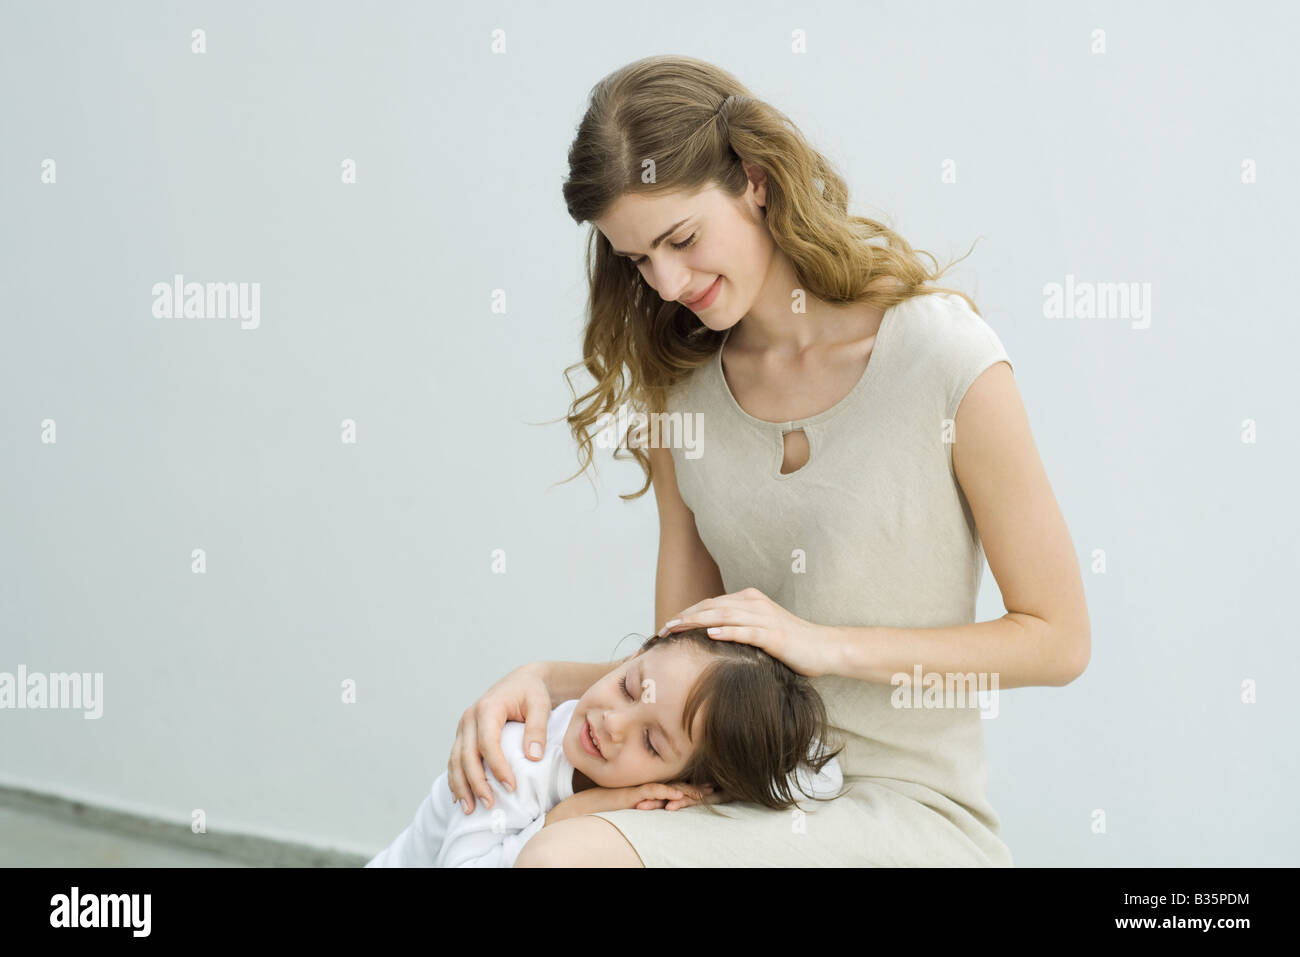 Little boy resting head on mother's lap, woman stroking child's hair - Stock Image